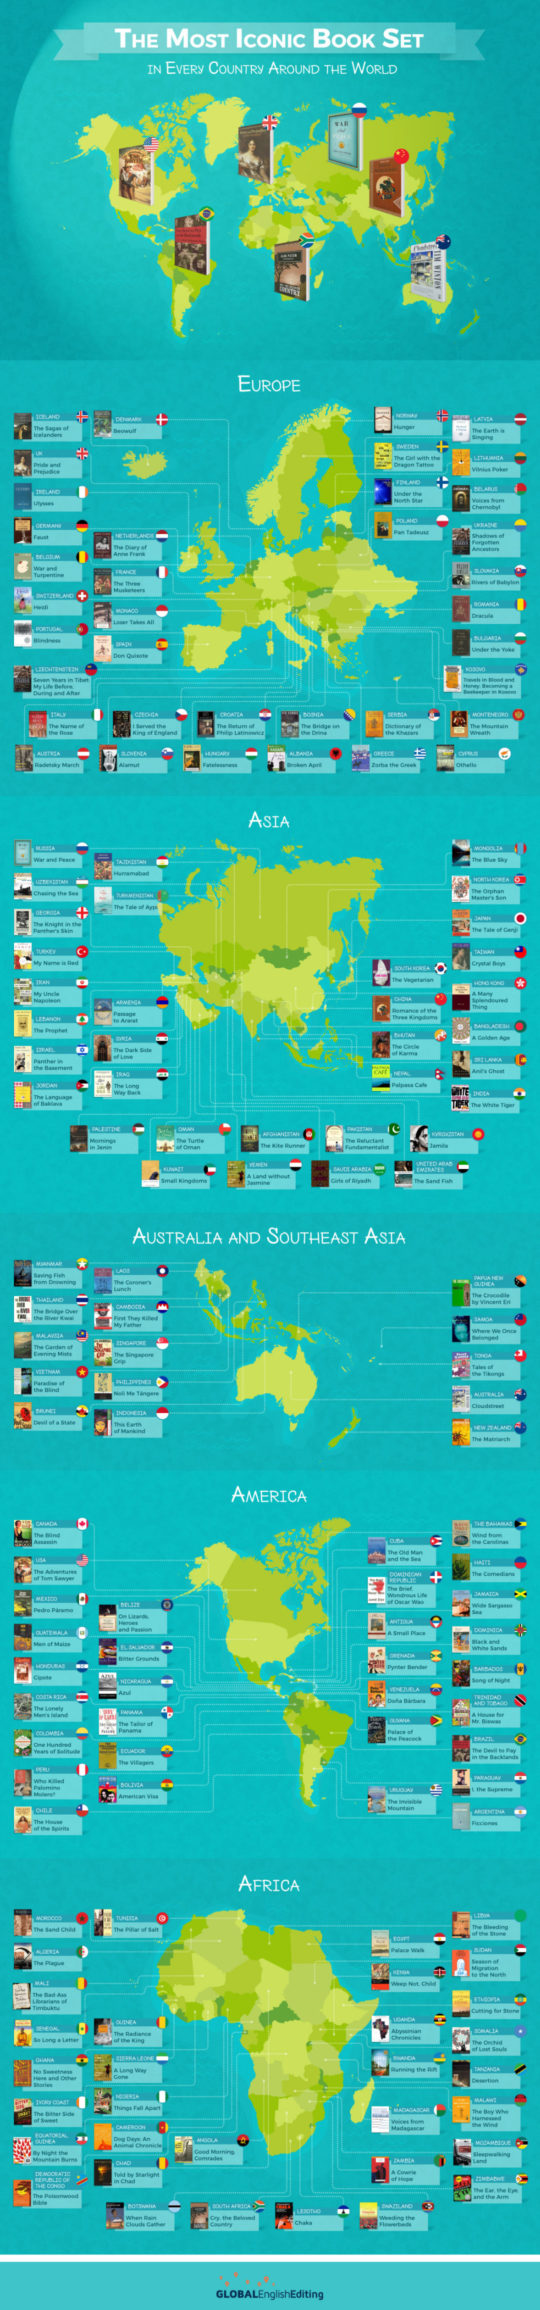 Most iconic books set in 150 countries around the world #infographic